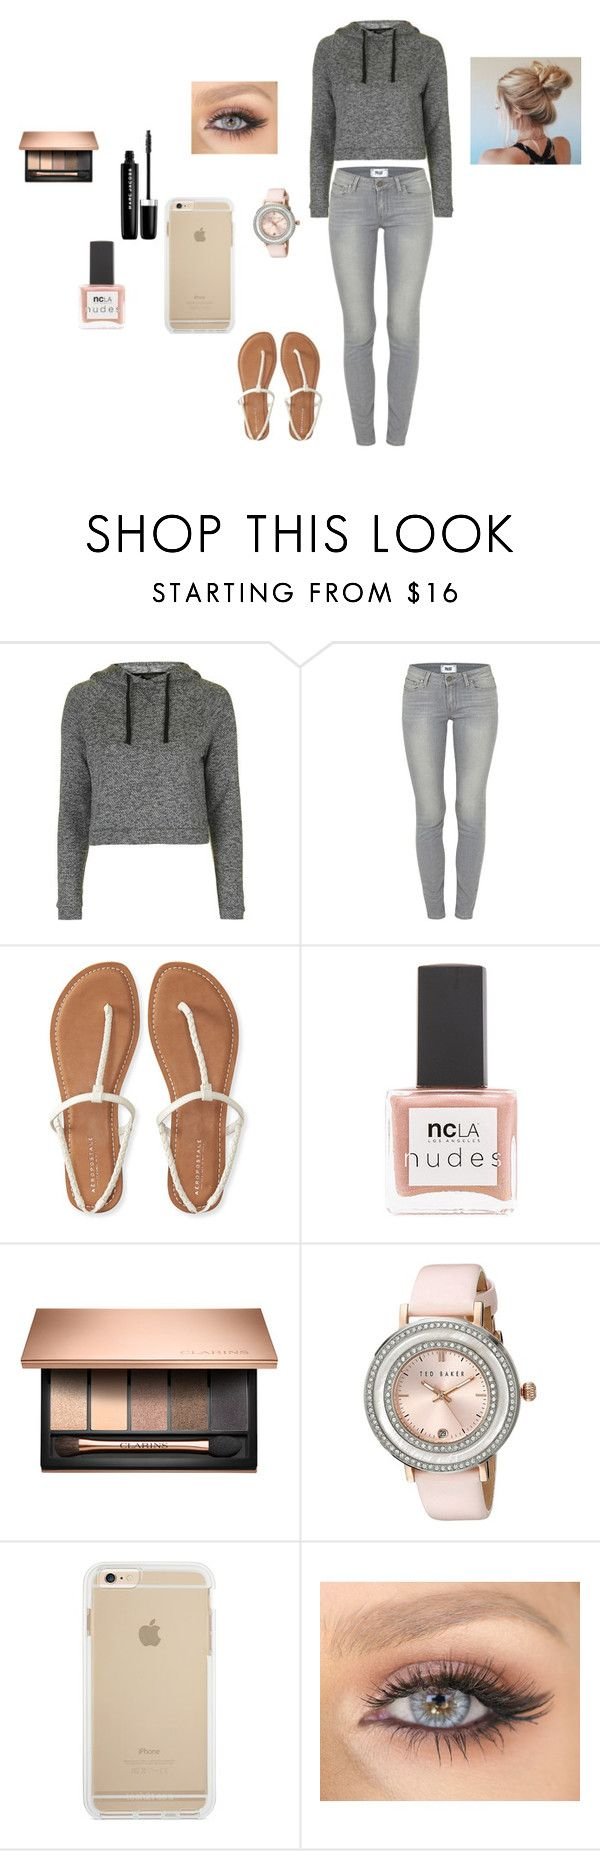 """""""eyuyu"""" by http-txmmi on Polyvore featuring Topshop, Paige Denim, Aéropostale, ncLA, Ted Baker and Marc Jacobs"""